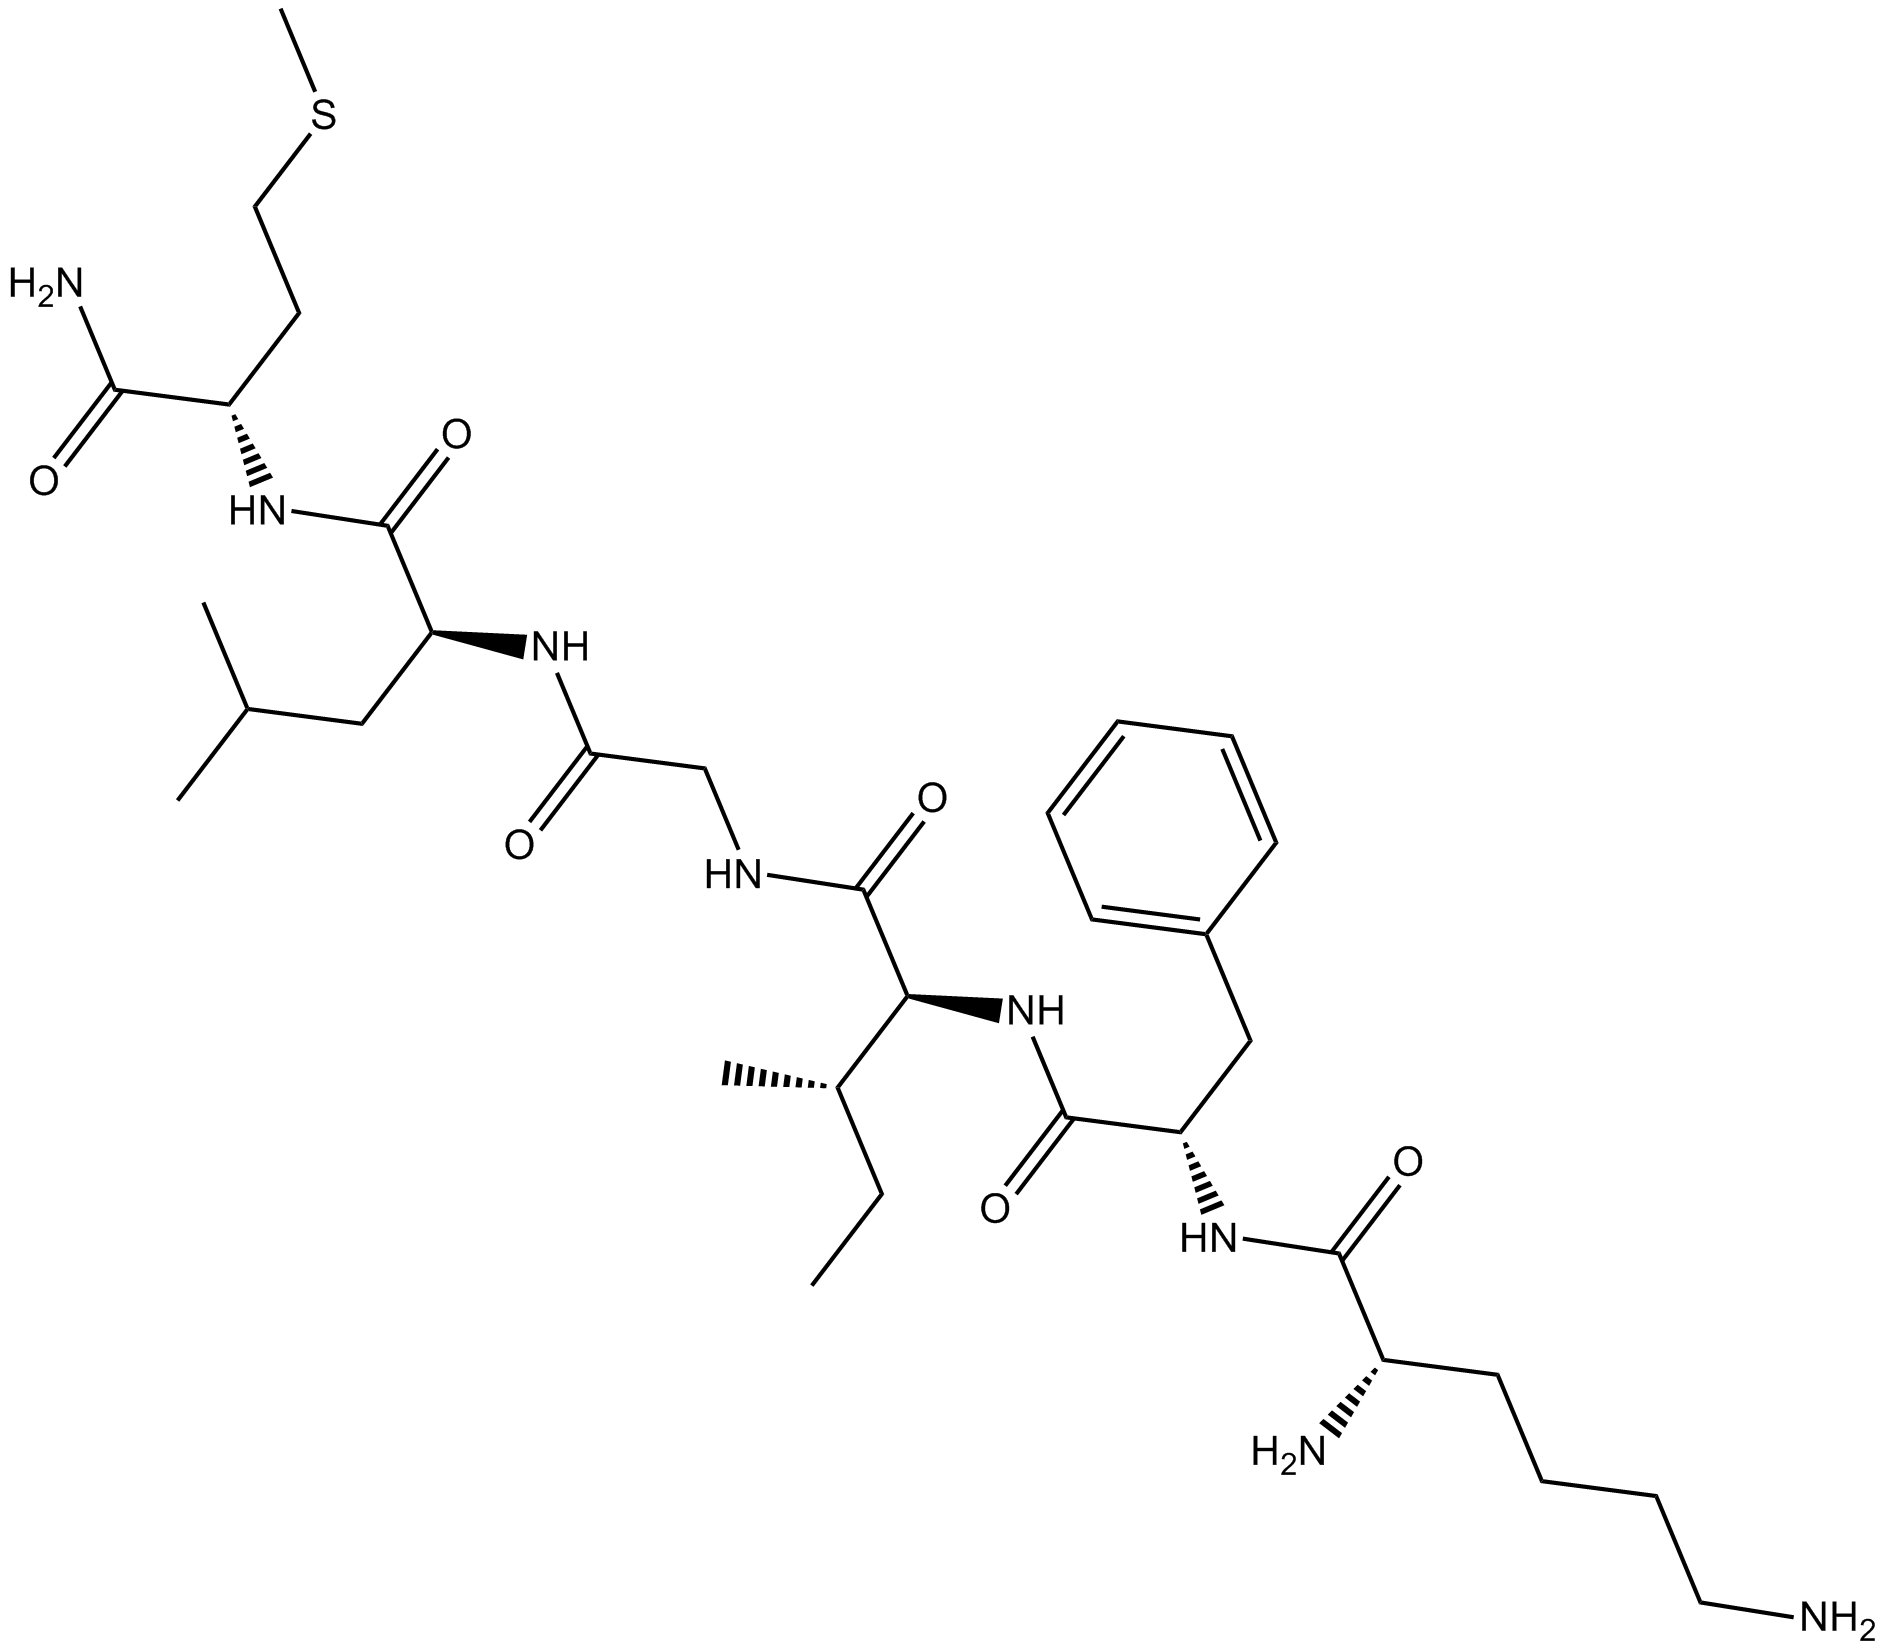 Eledoisin-Related Peptide